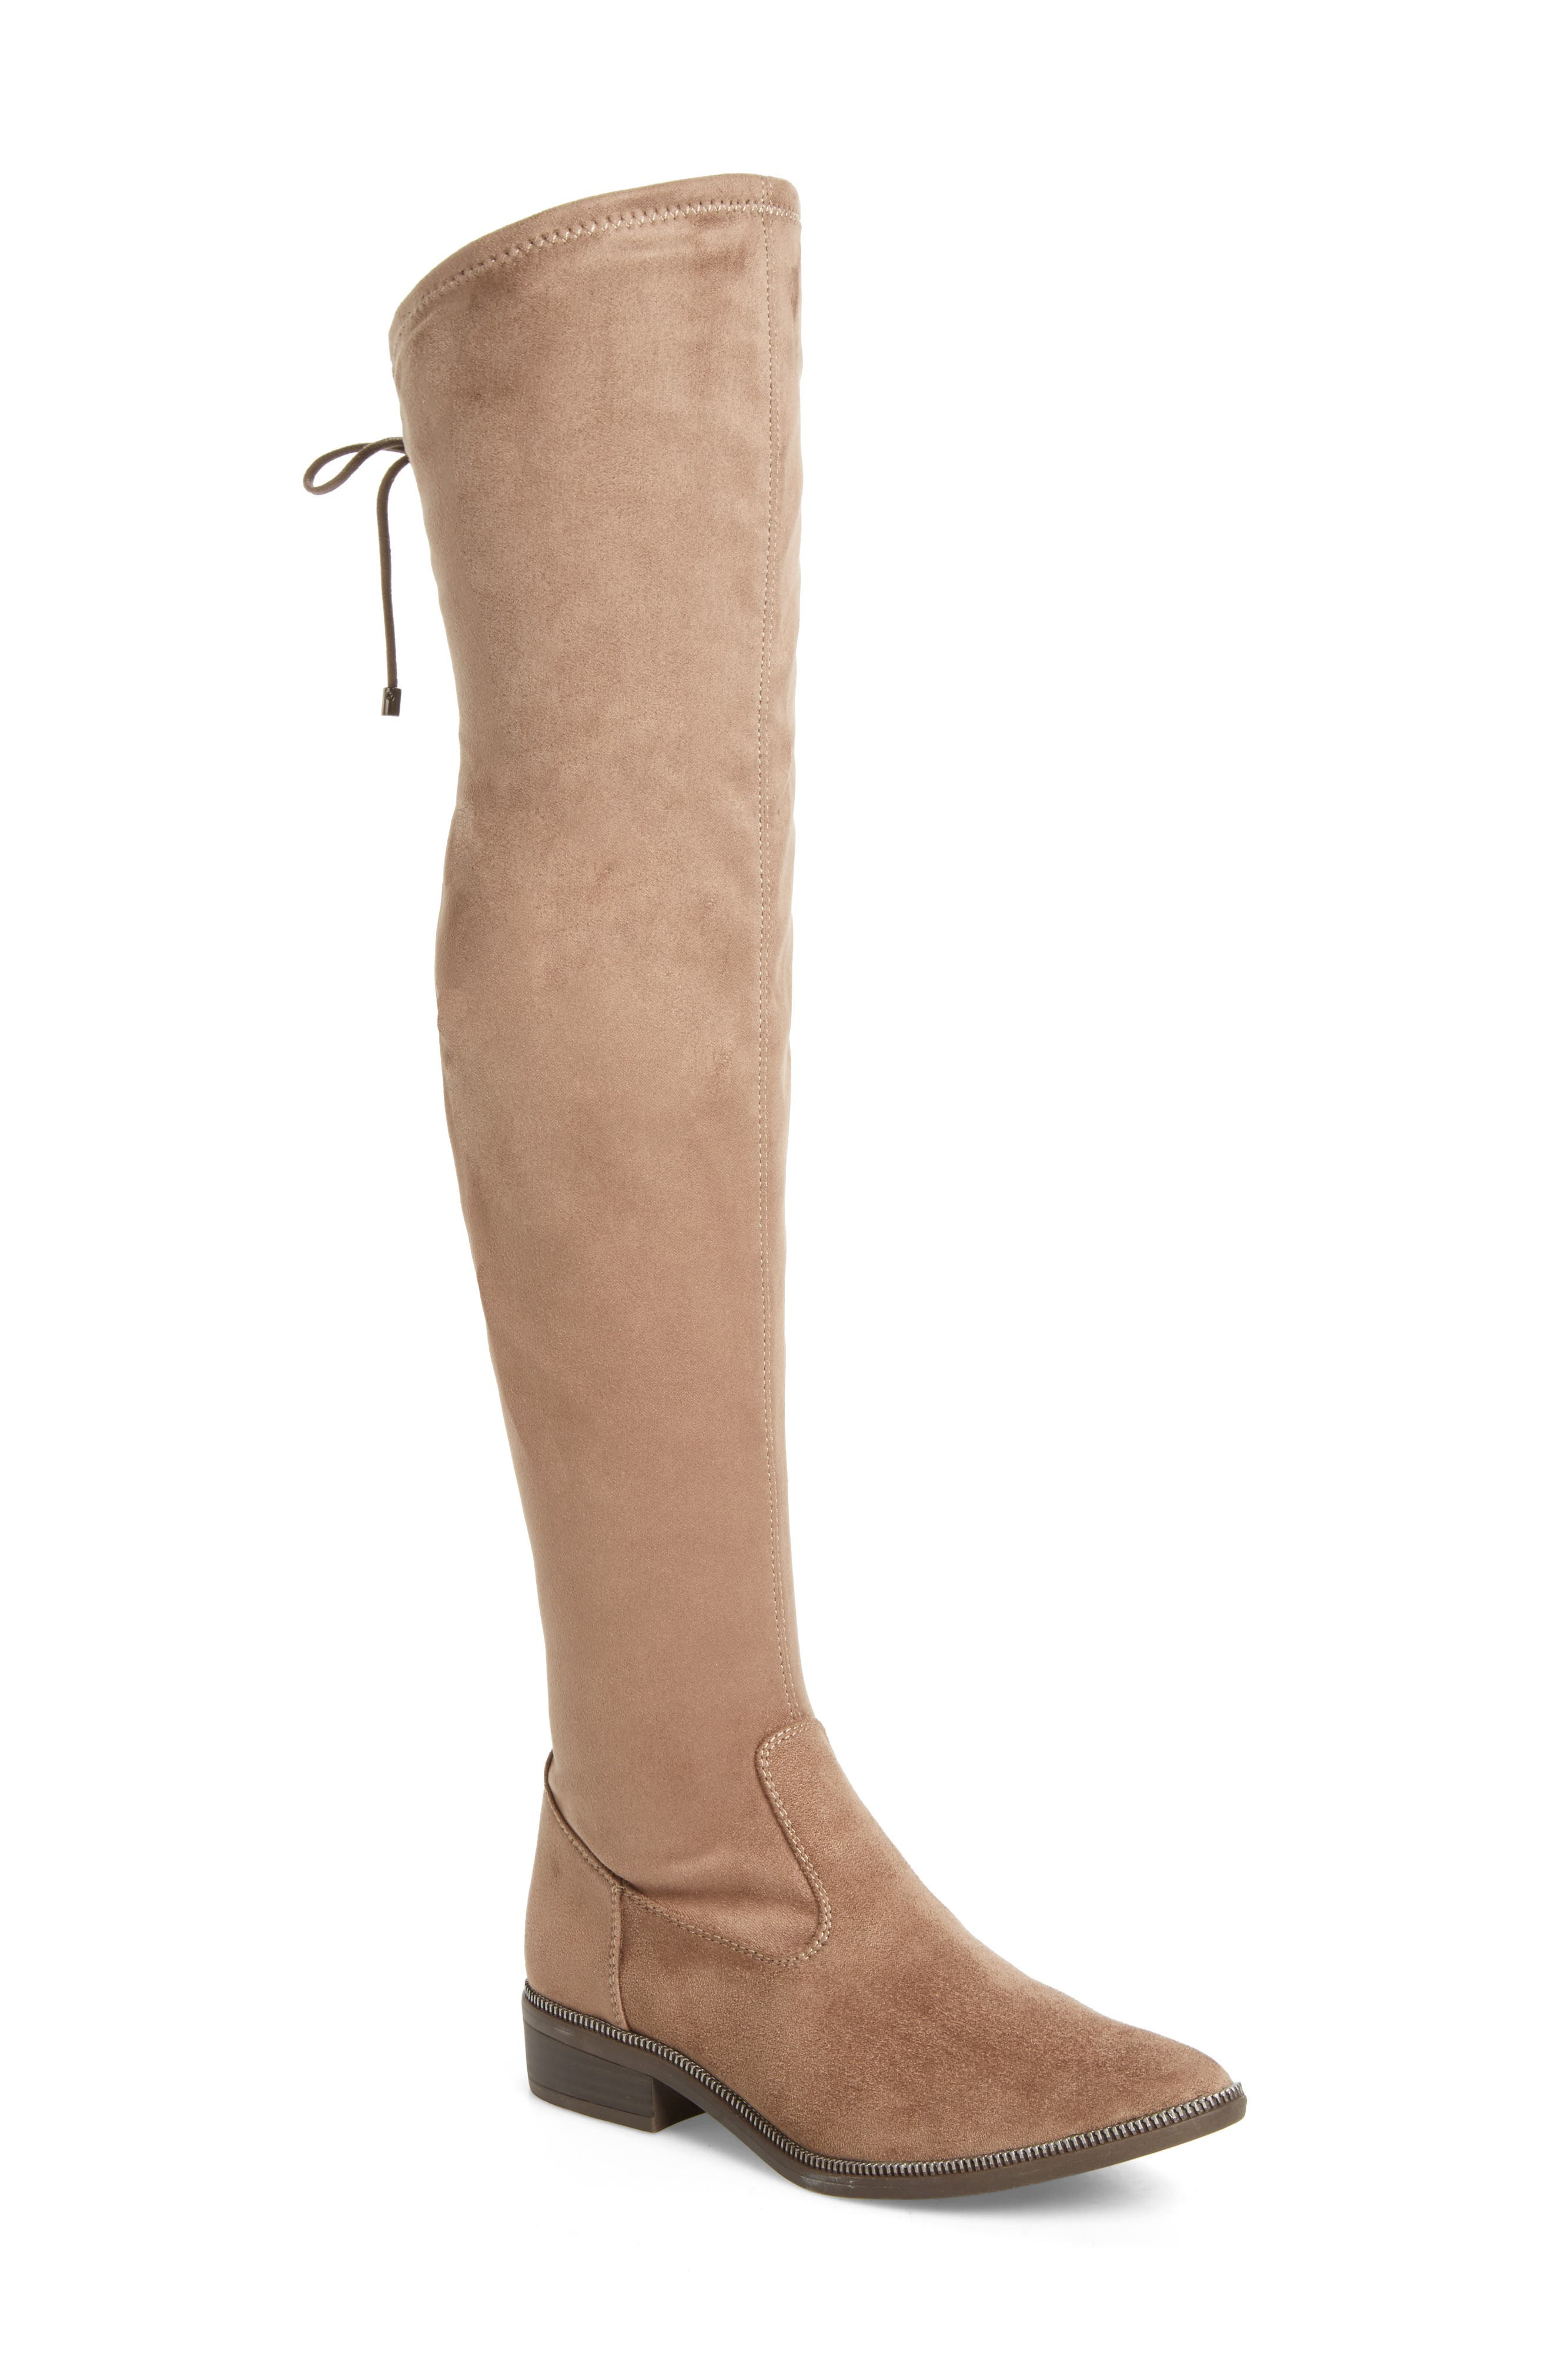 Phanie Over the Knee Stretch Boot,                         Main,                         color, Dune Fabric